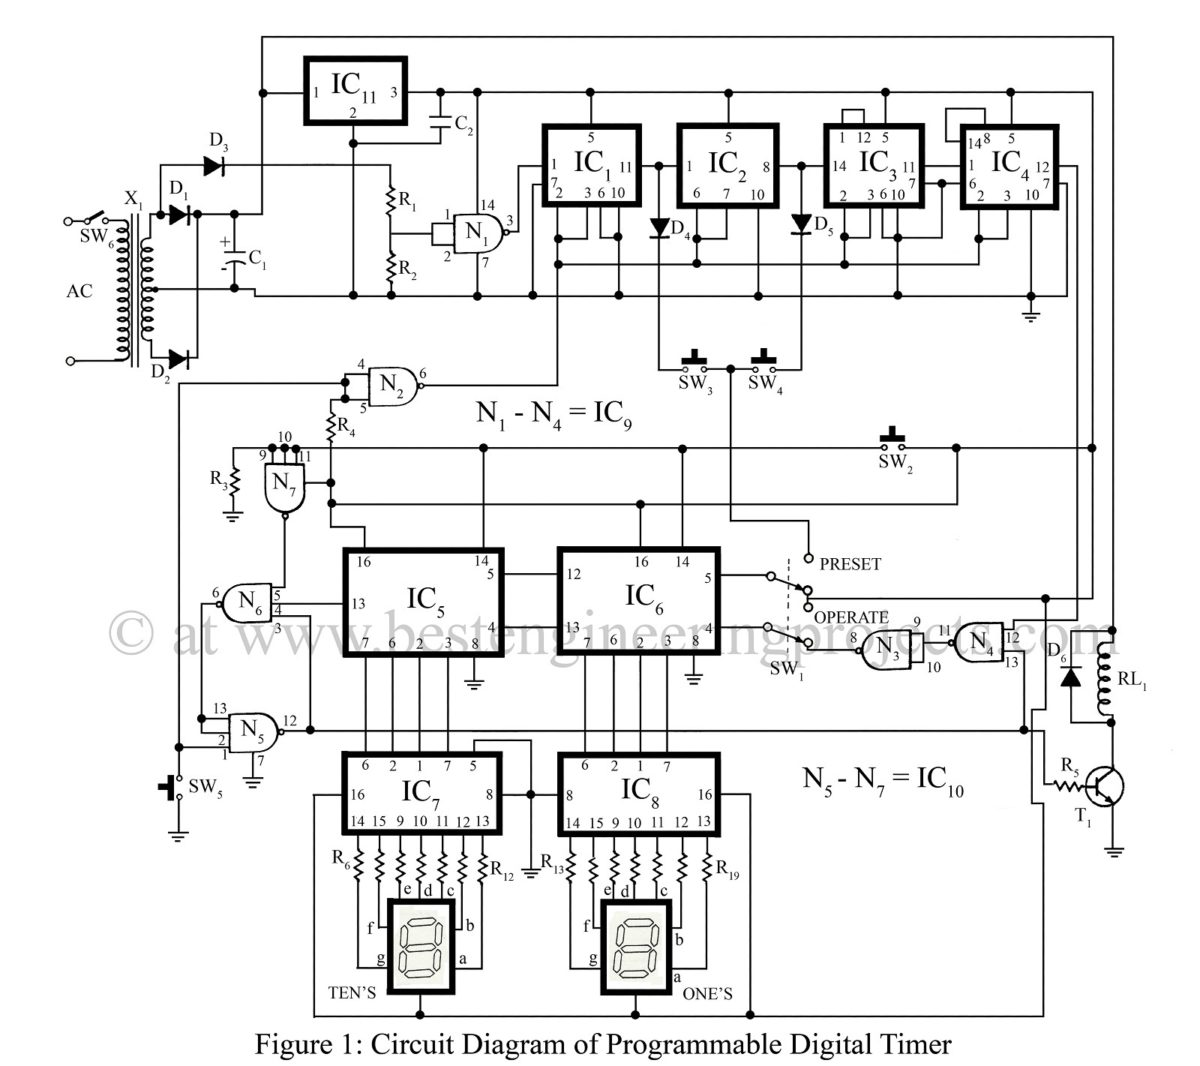 Programmable digital timer circuit diagram best engineering circuit diagram programmable digital timer ccuart Images